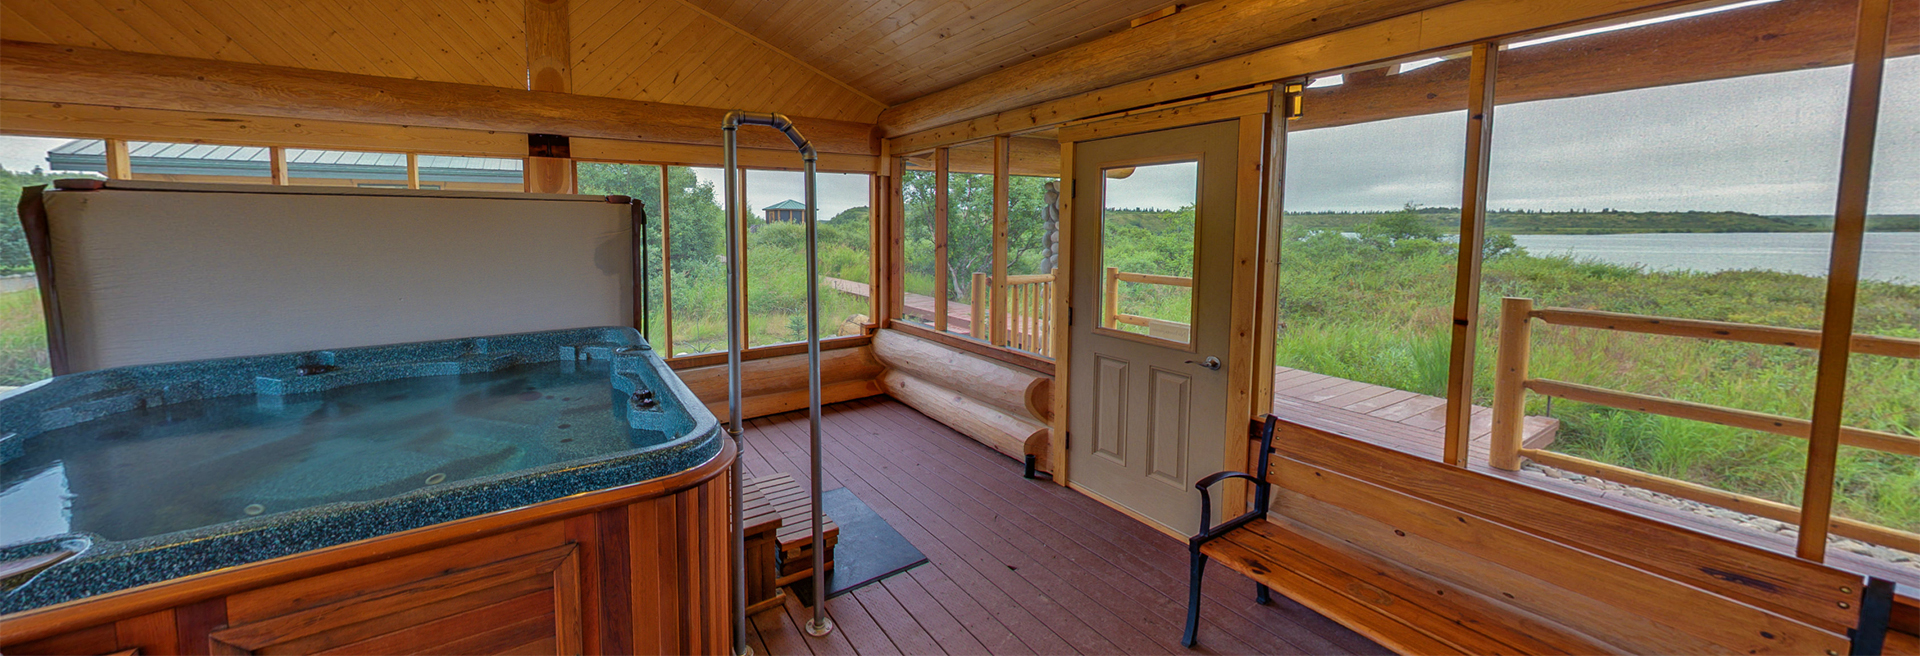 Lodge Amenities